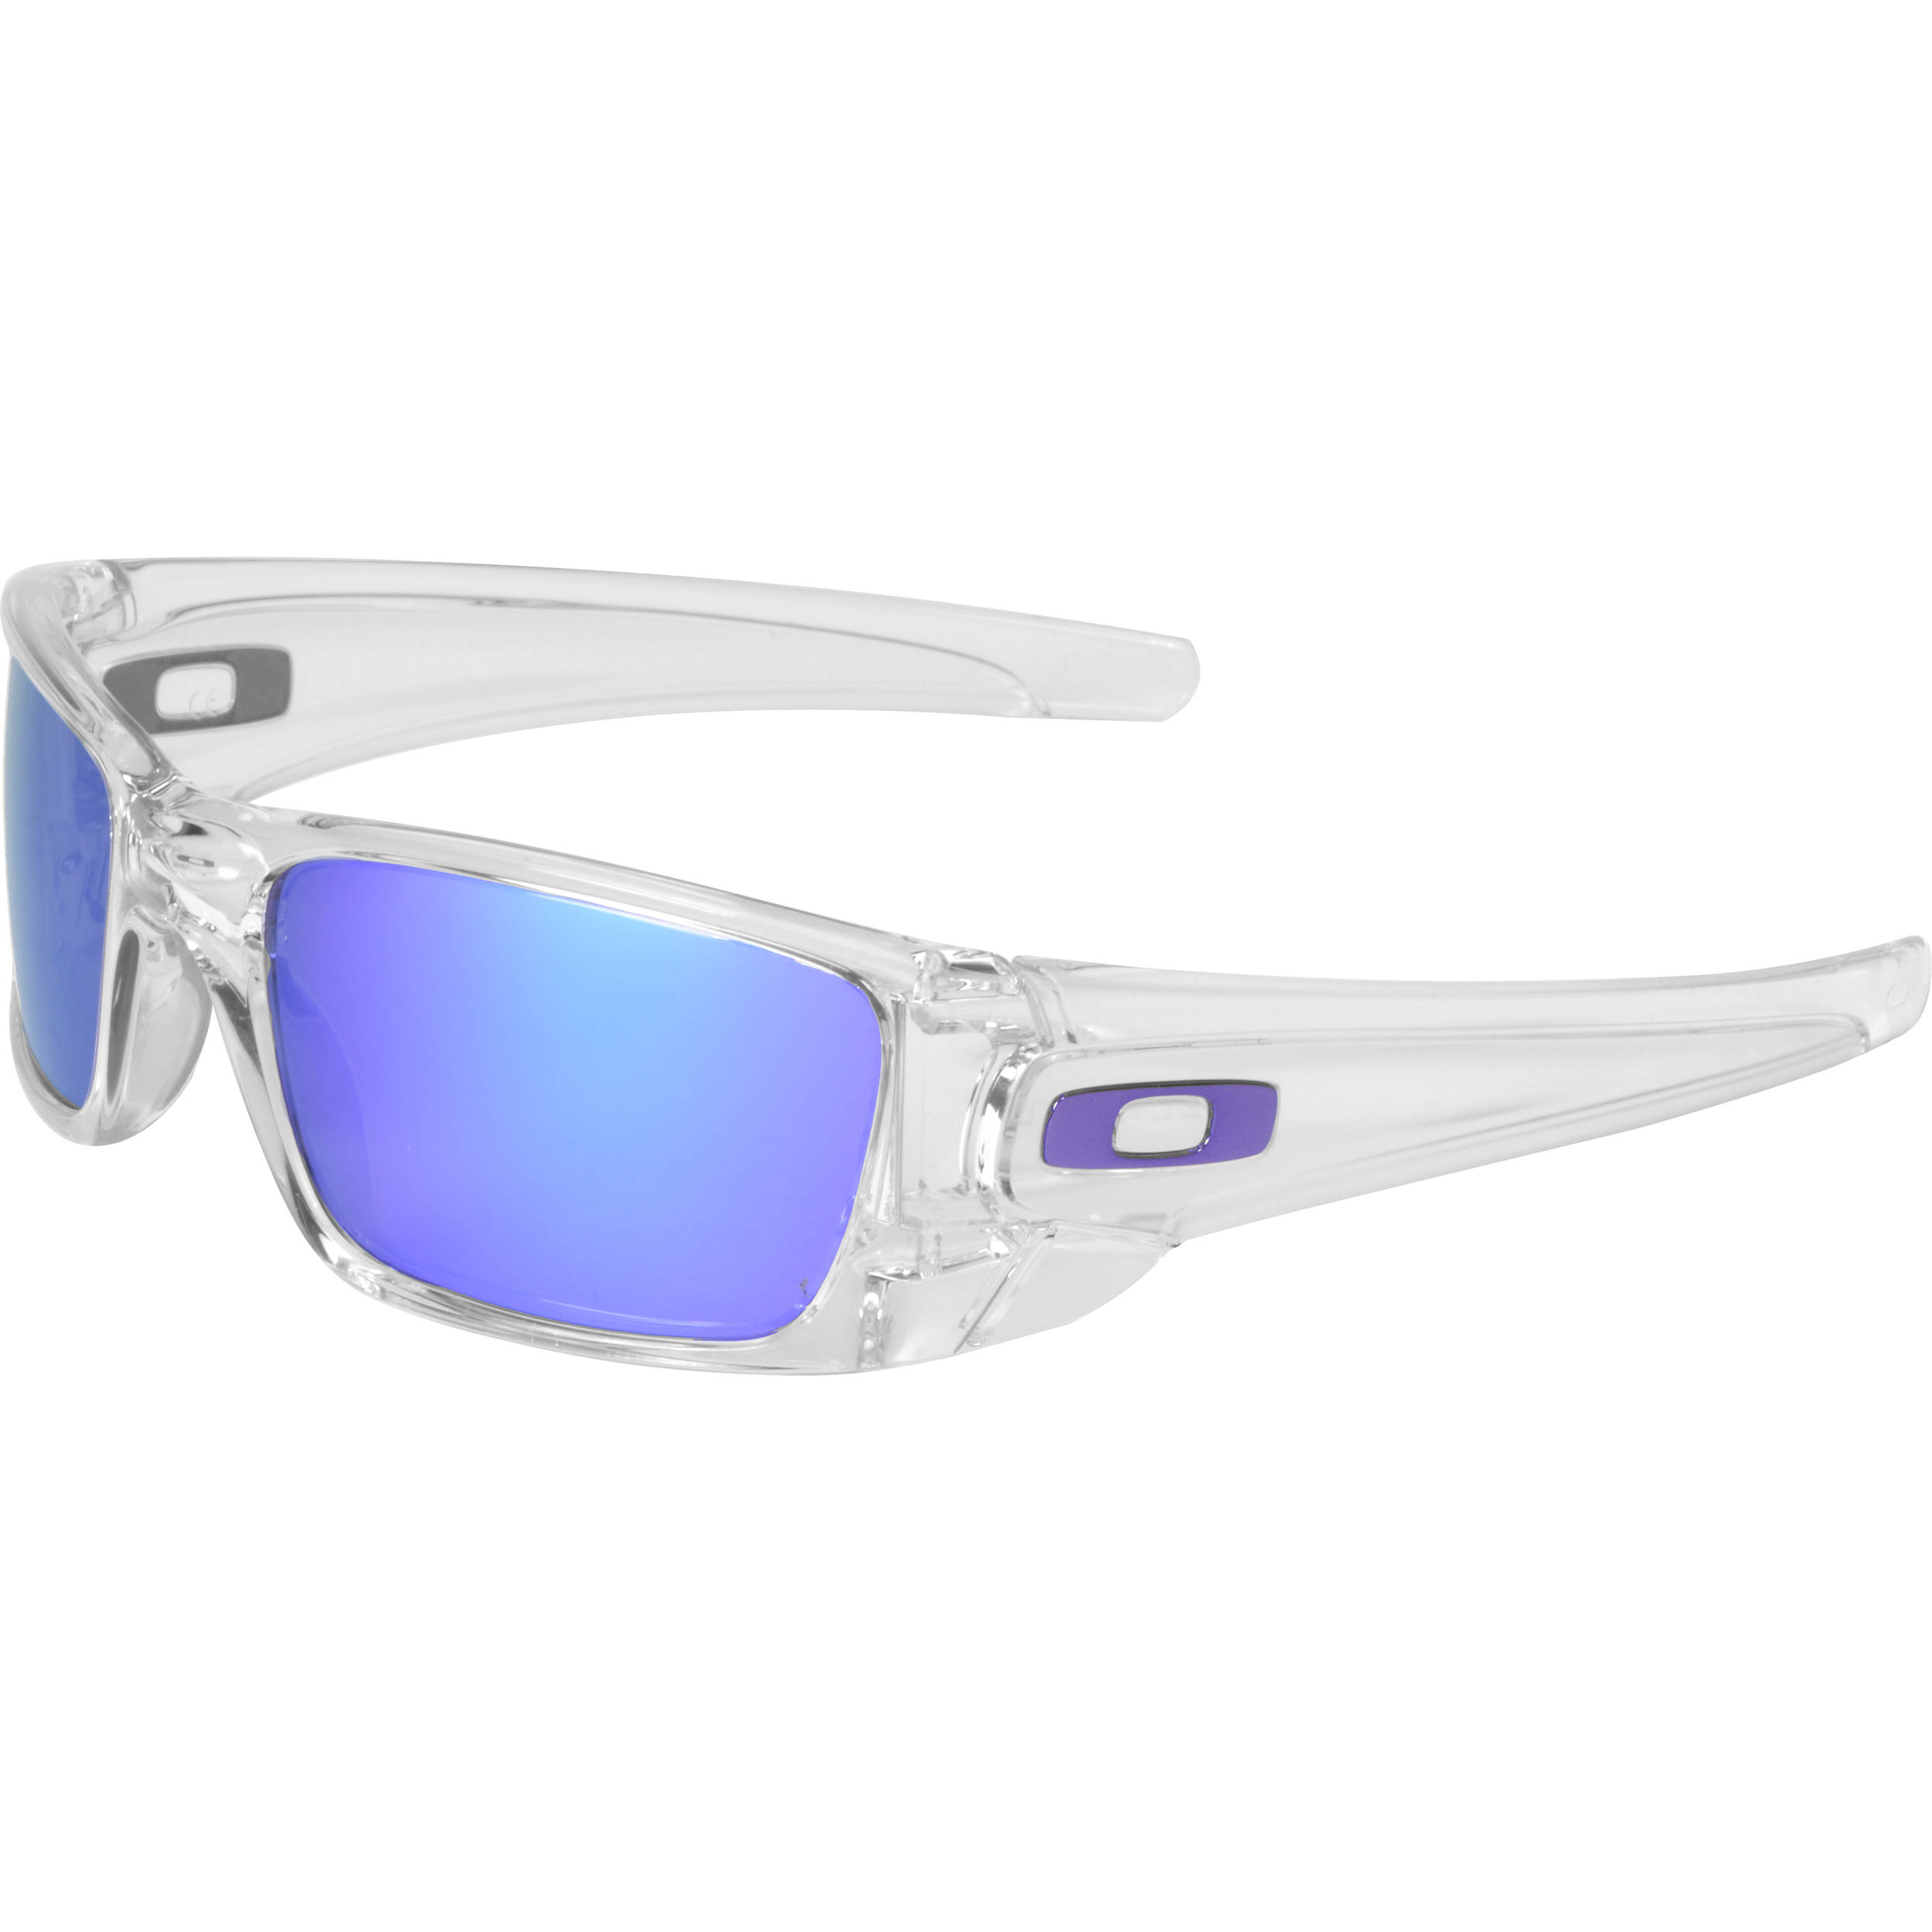 Oakley Clear Frame Glasses : Oakley Fuel Cell Sunglasses 0OO9096-90960460 B&H Photo Video